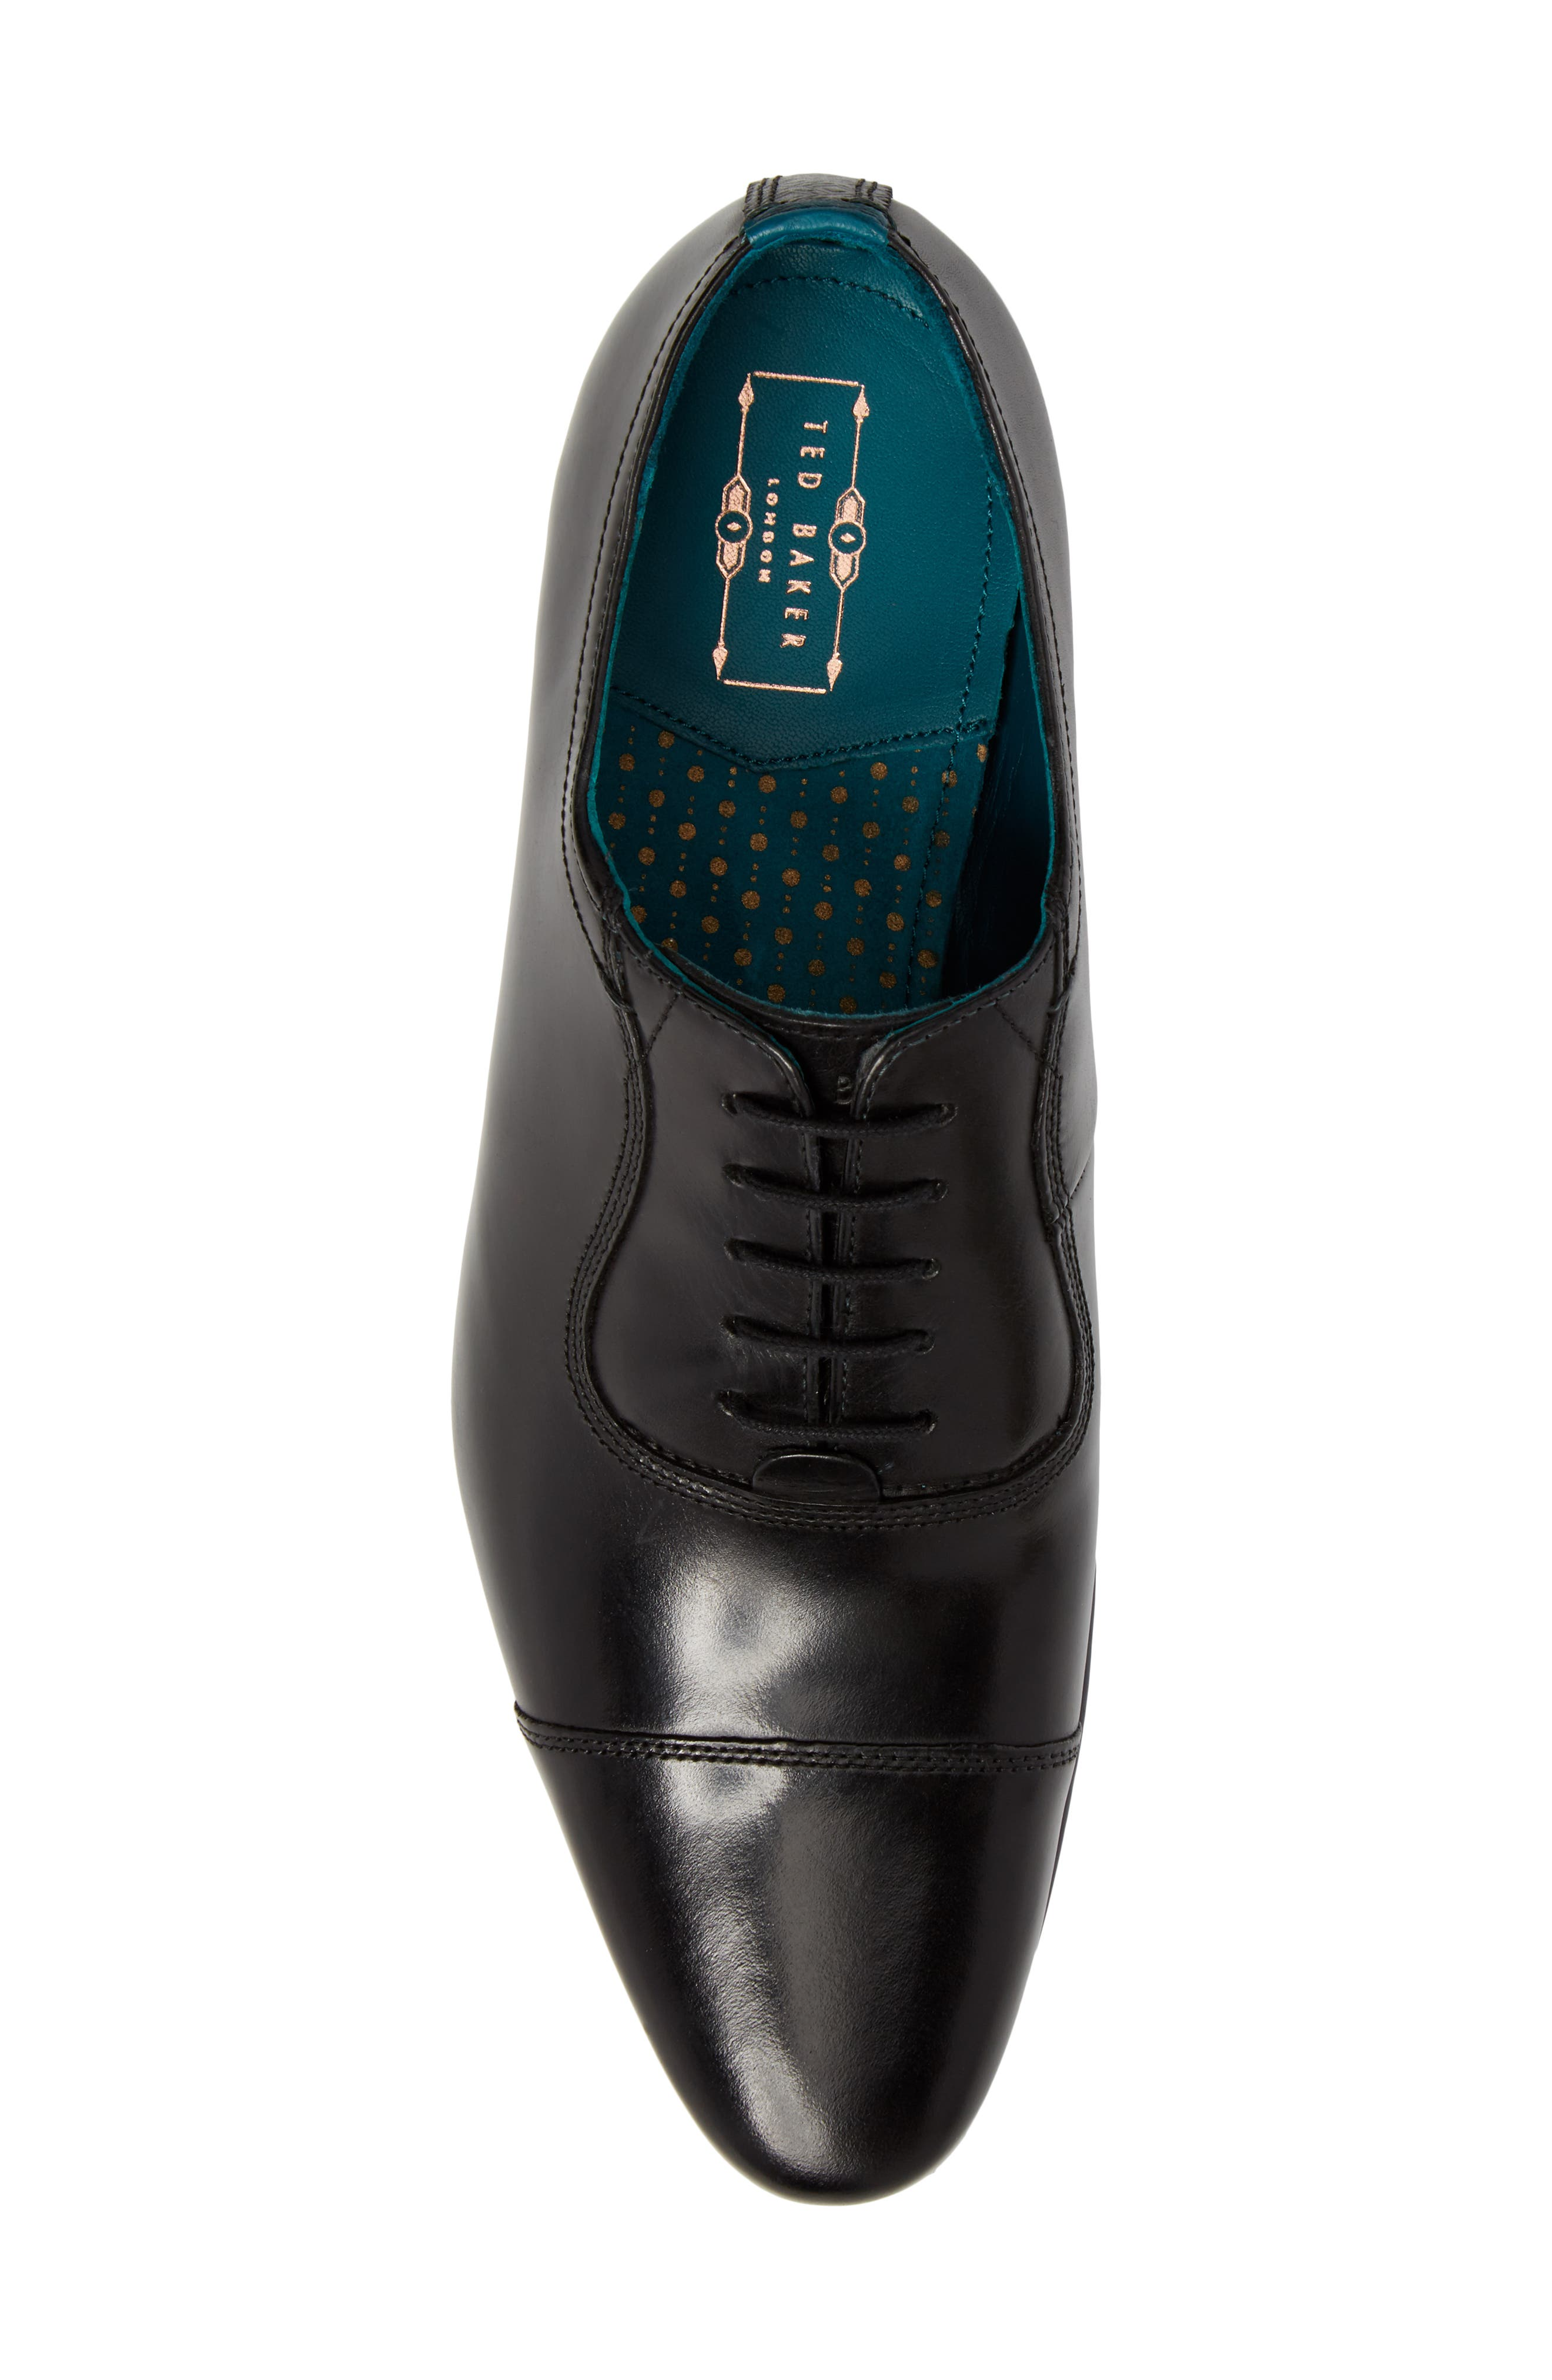 TED BAKER LONDON, Karney Cap Toe Oxford, Alternate thumbnail 5, color, BLACK LEATHER